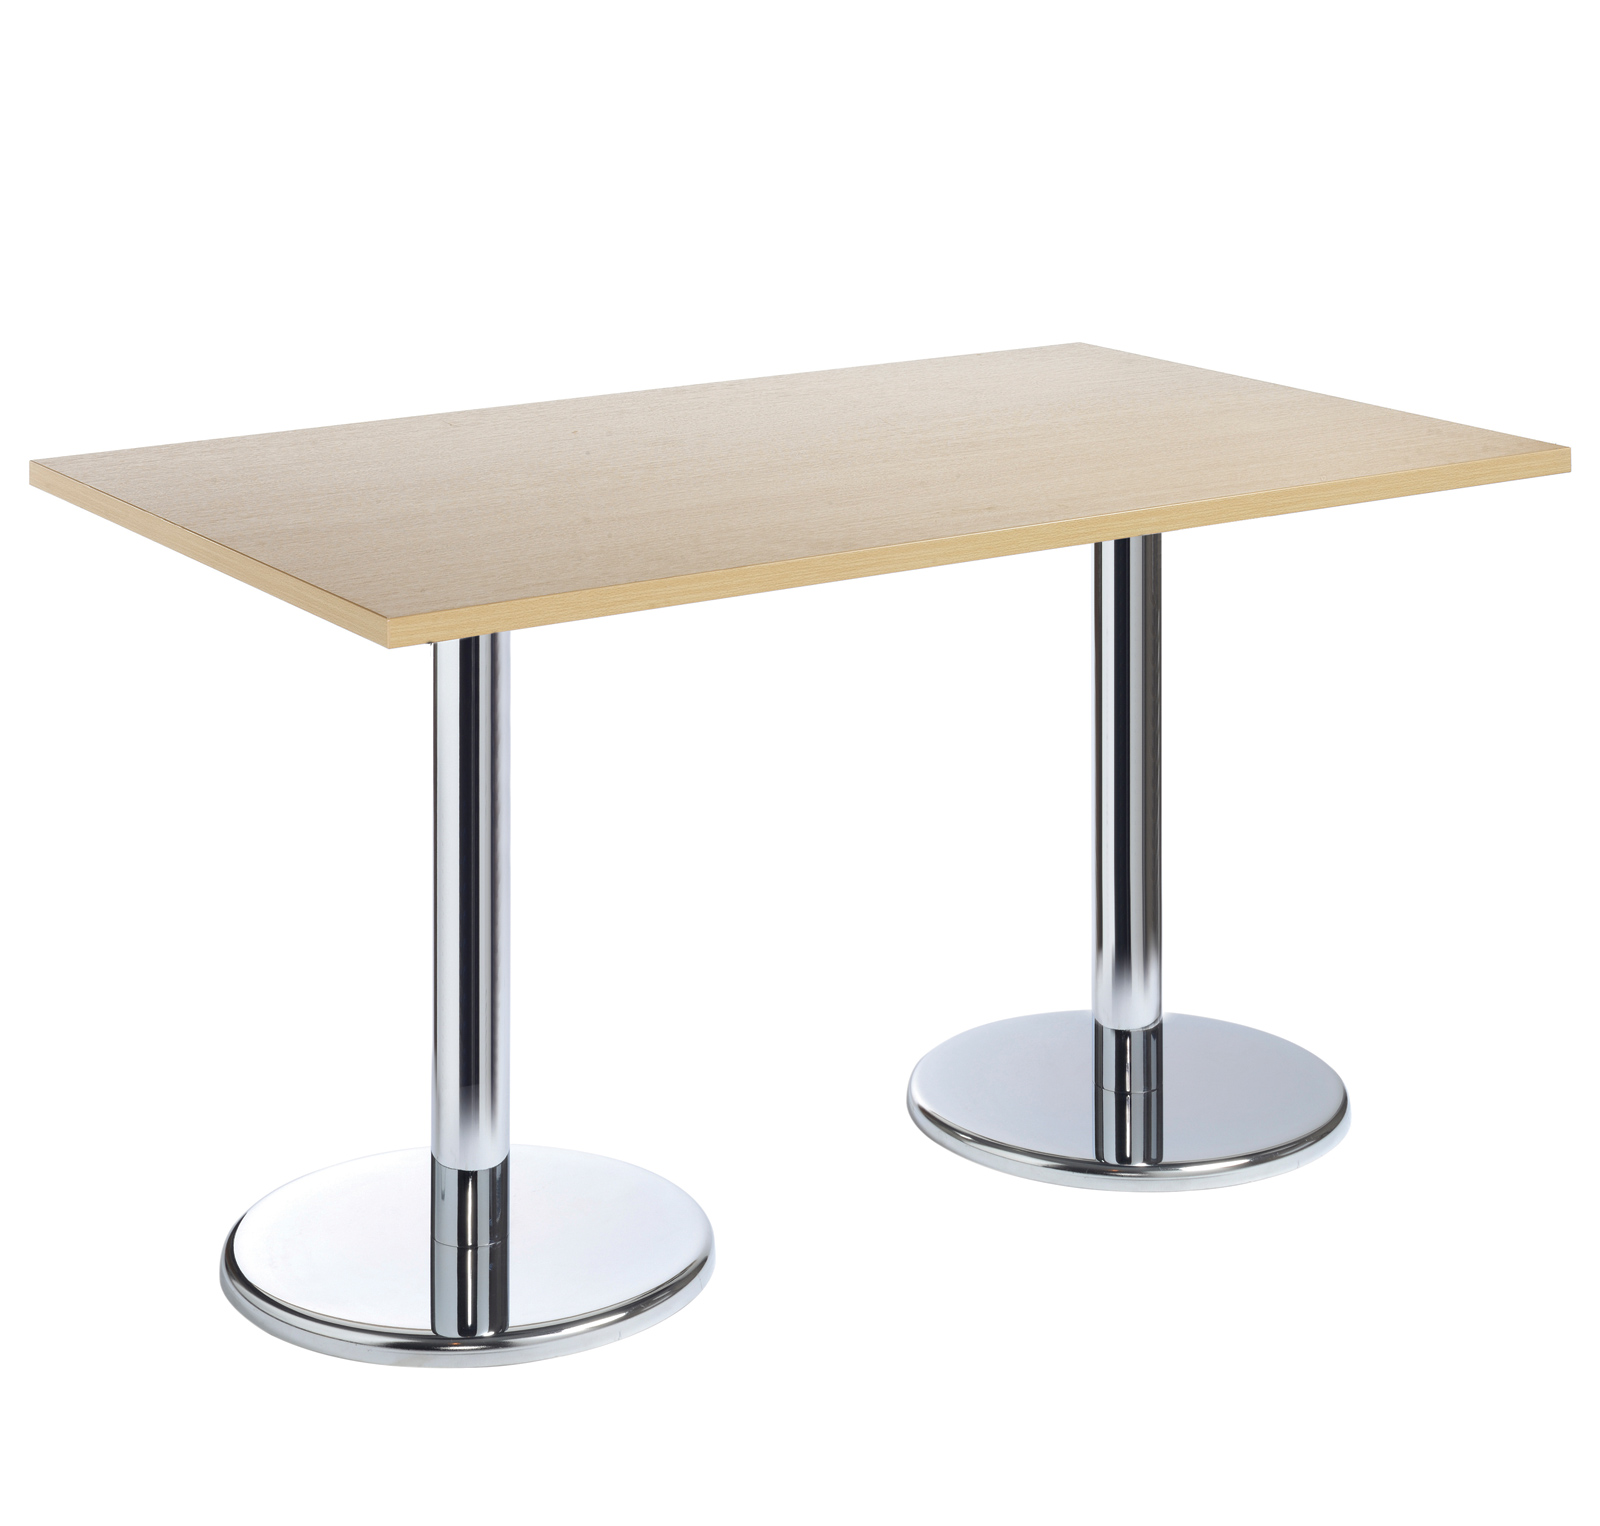 Pisa rectangular table with round chrome base 1600mm x 800mm - beech